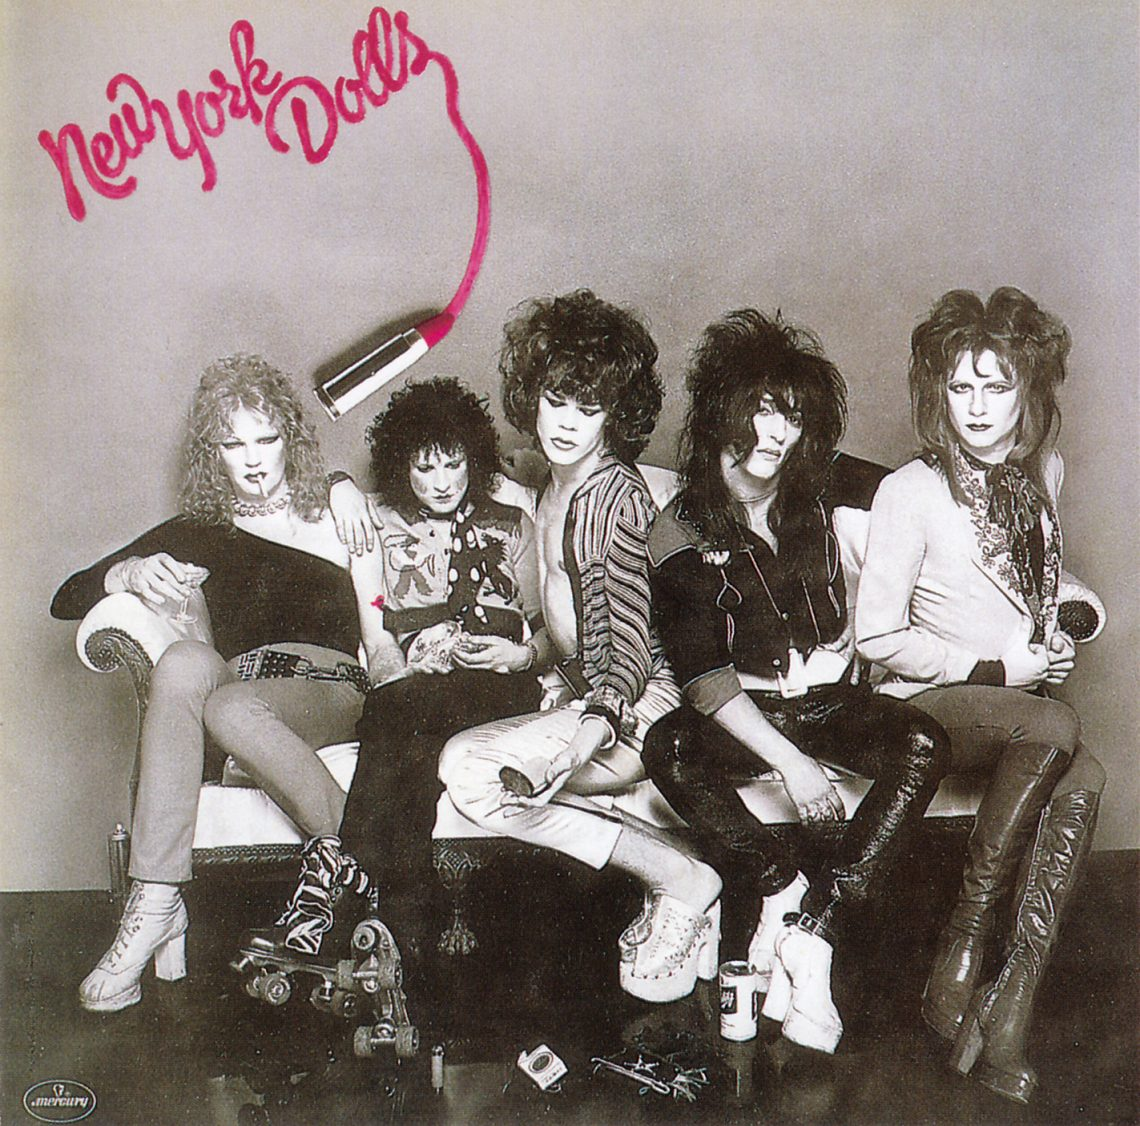 http://www.thesenseofdoubt.com/wp-content/uploads/2014/01/new_york_dolls_-_1973_new_york_dolls.jpg